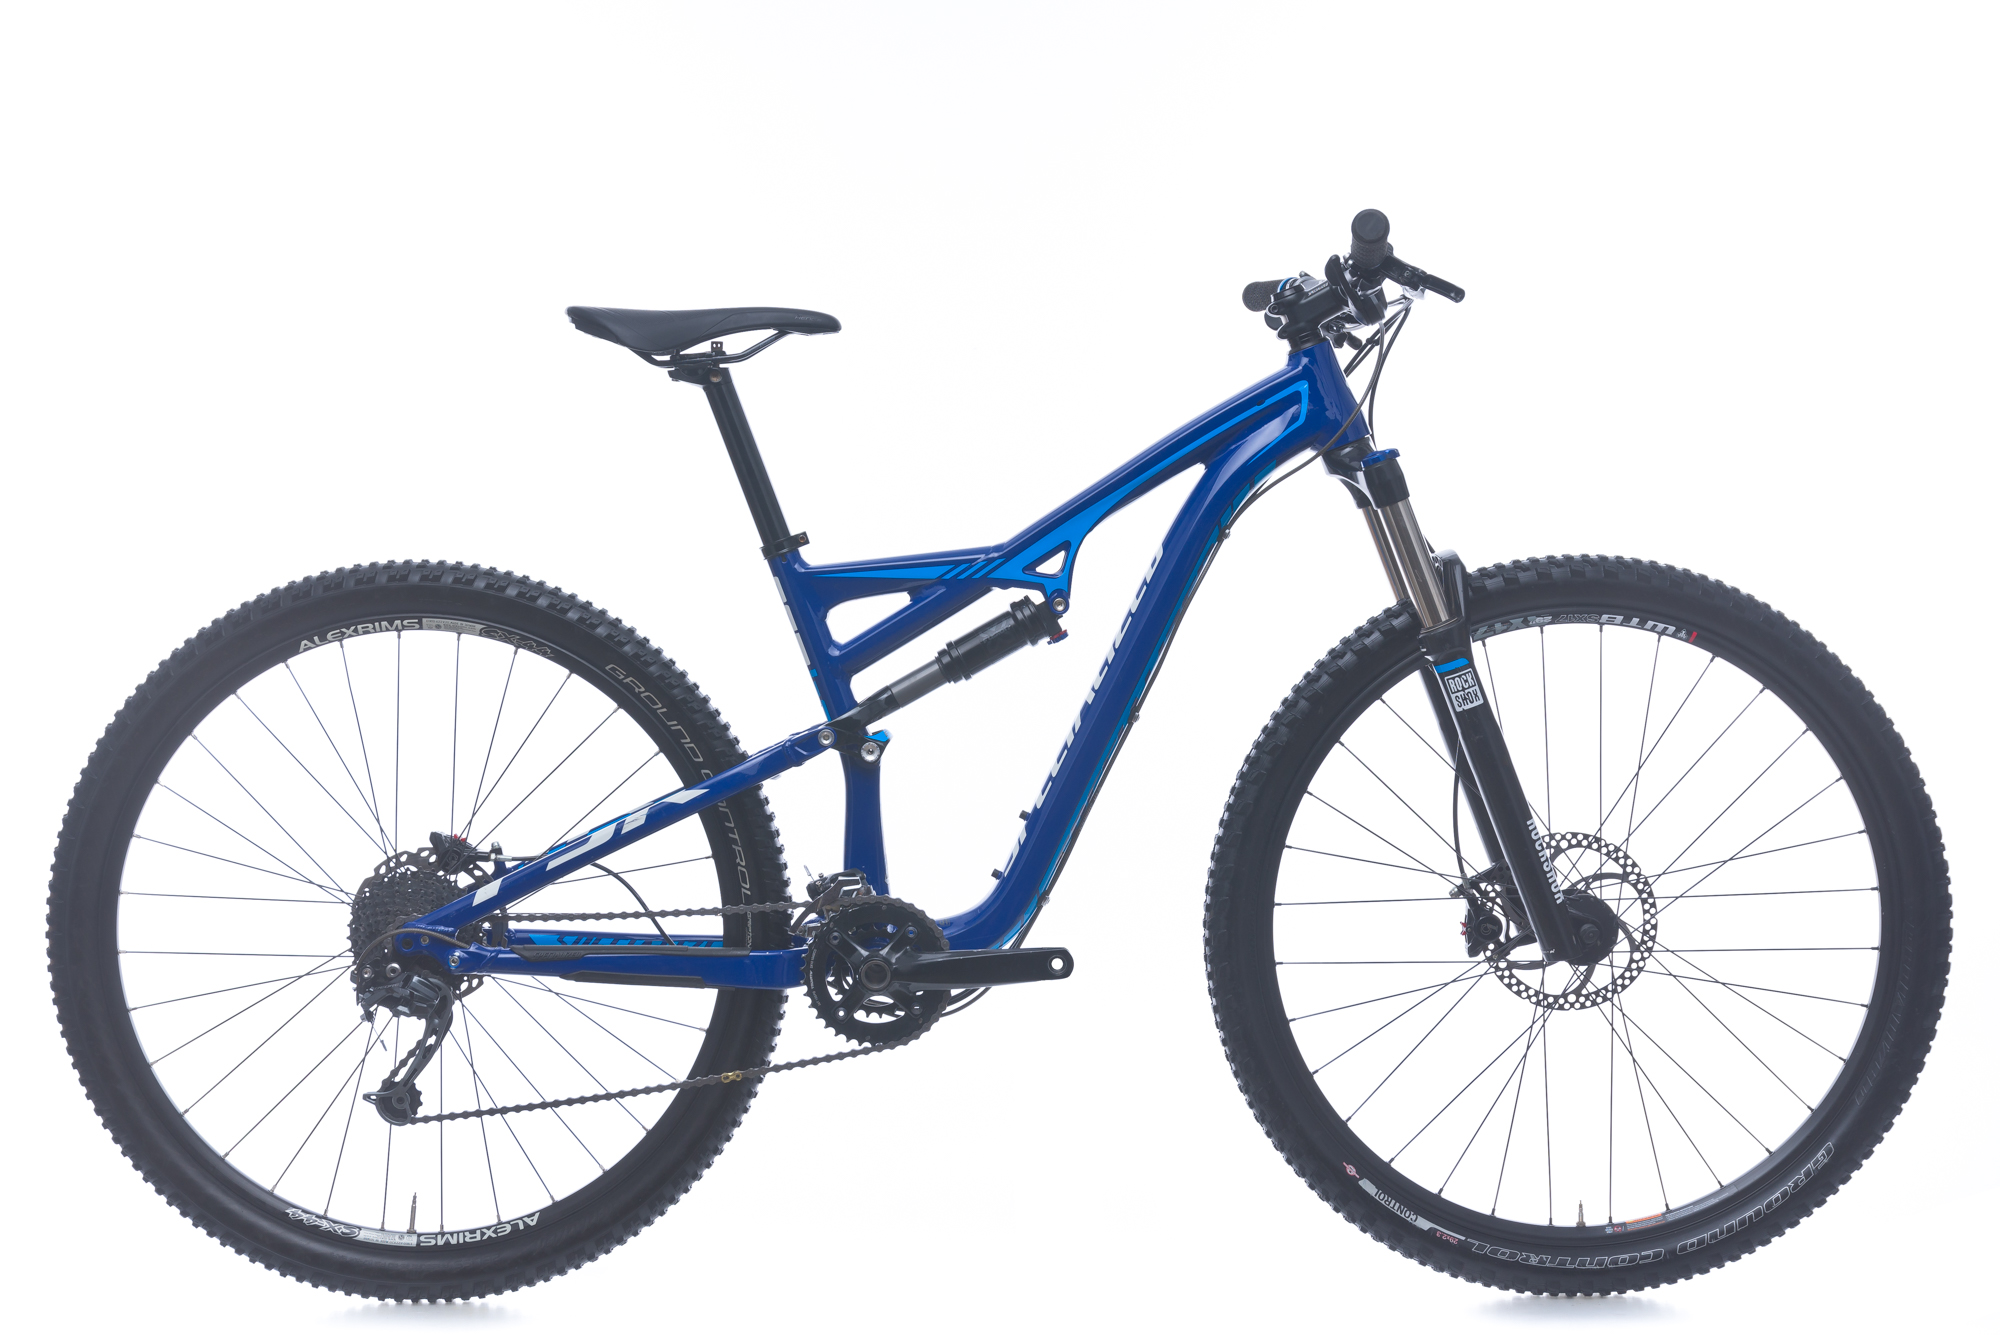 2015 Specialized Camber 29 Mountain Bike Medium 17in Aluminum ...